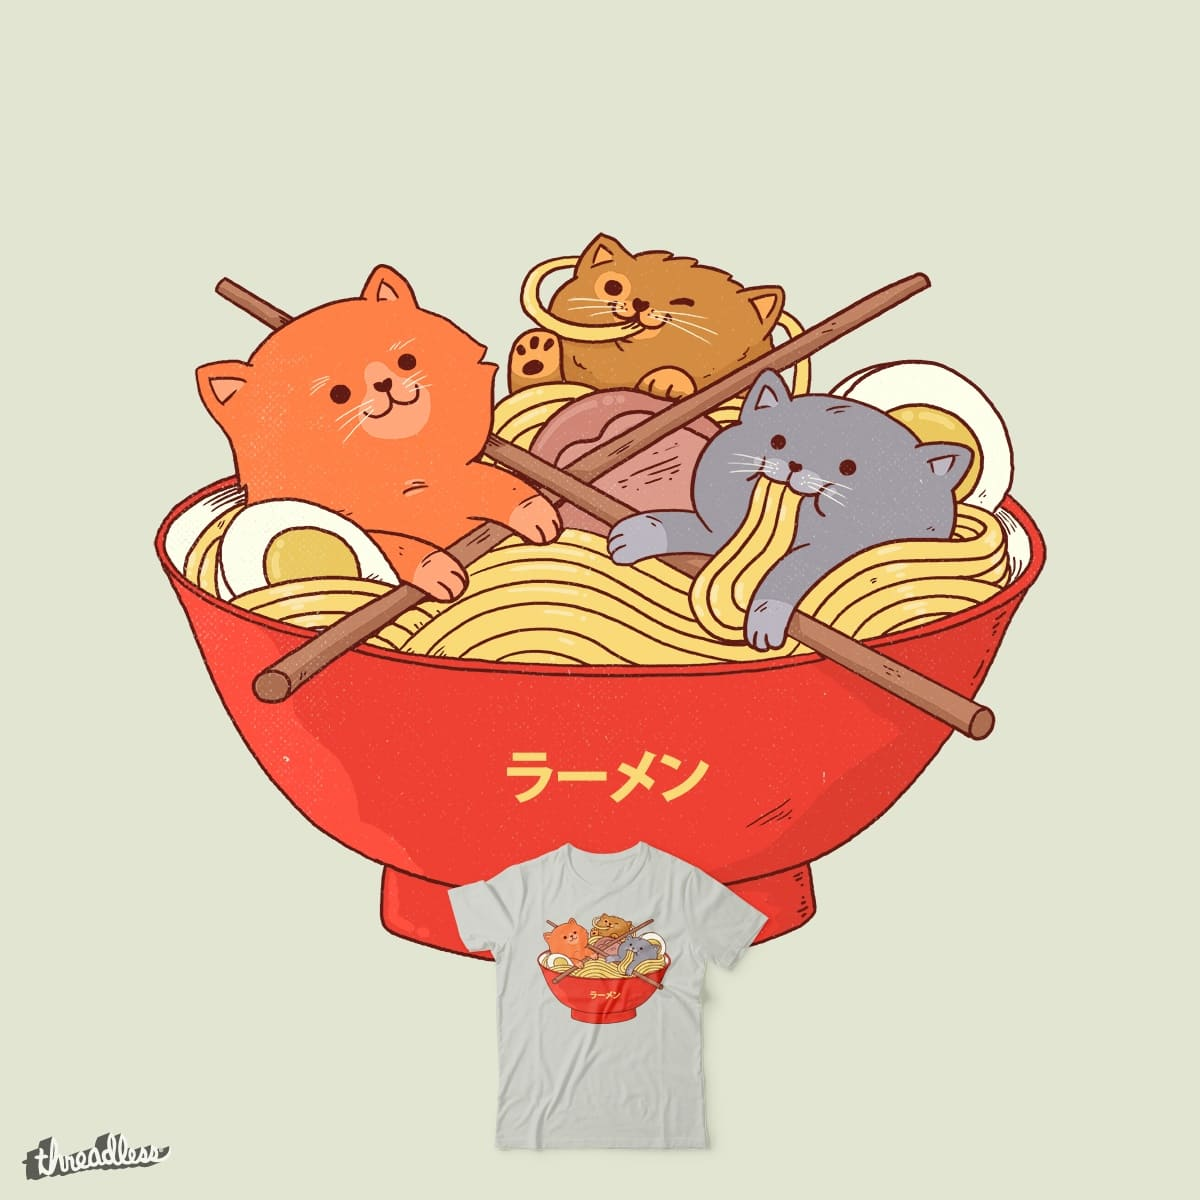 Ramen and cats  by ppmid on Threadless